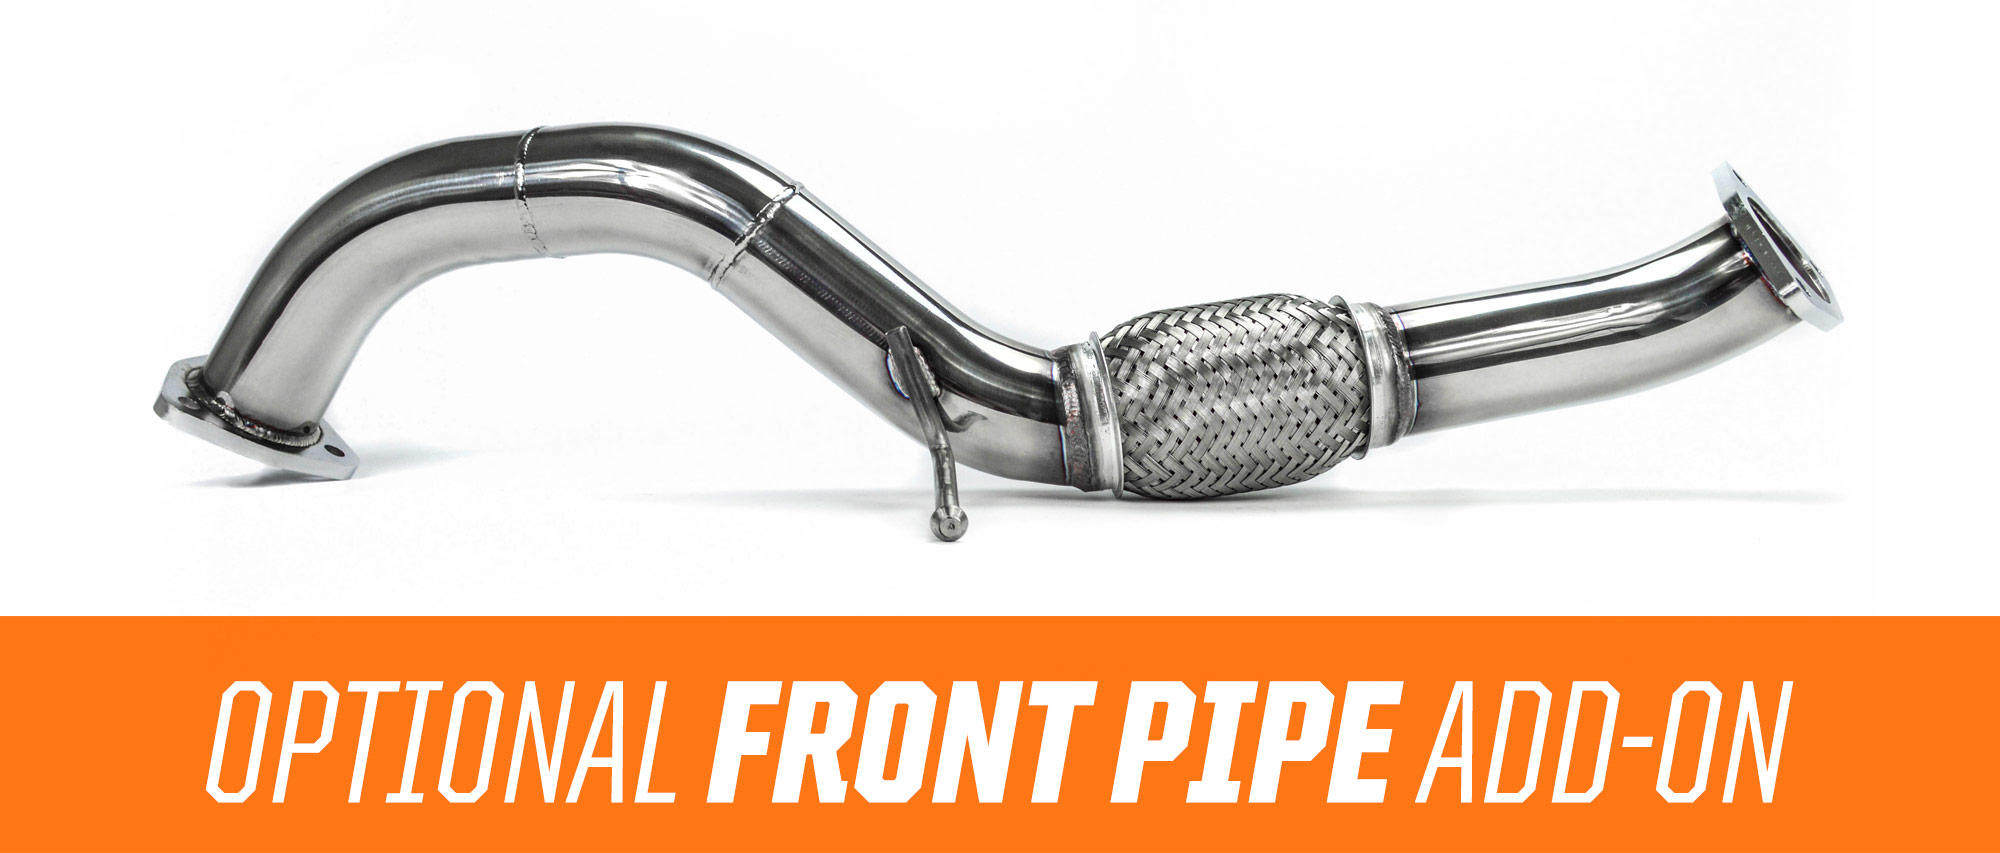 Located after your down-pipe our optional front-pipe will help complete your system